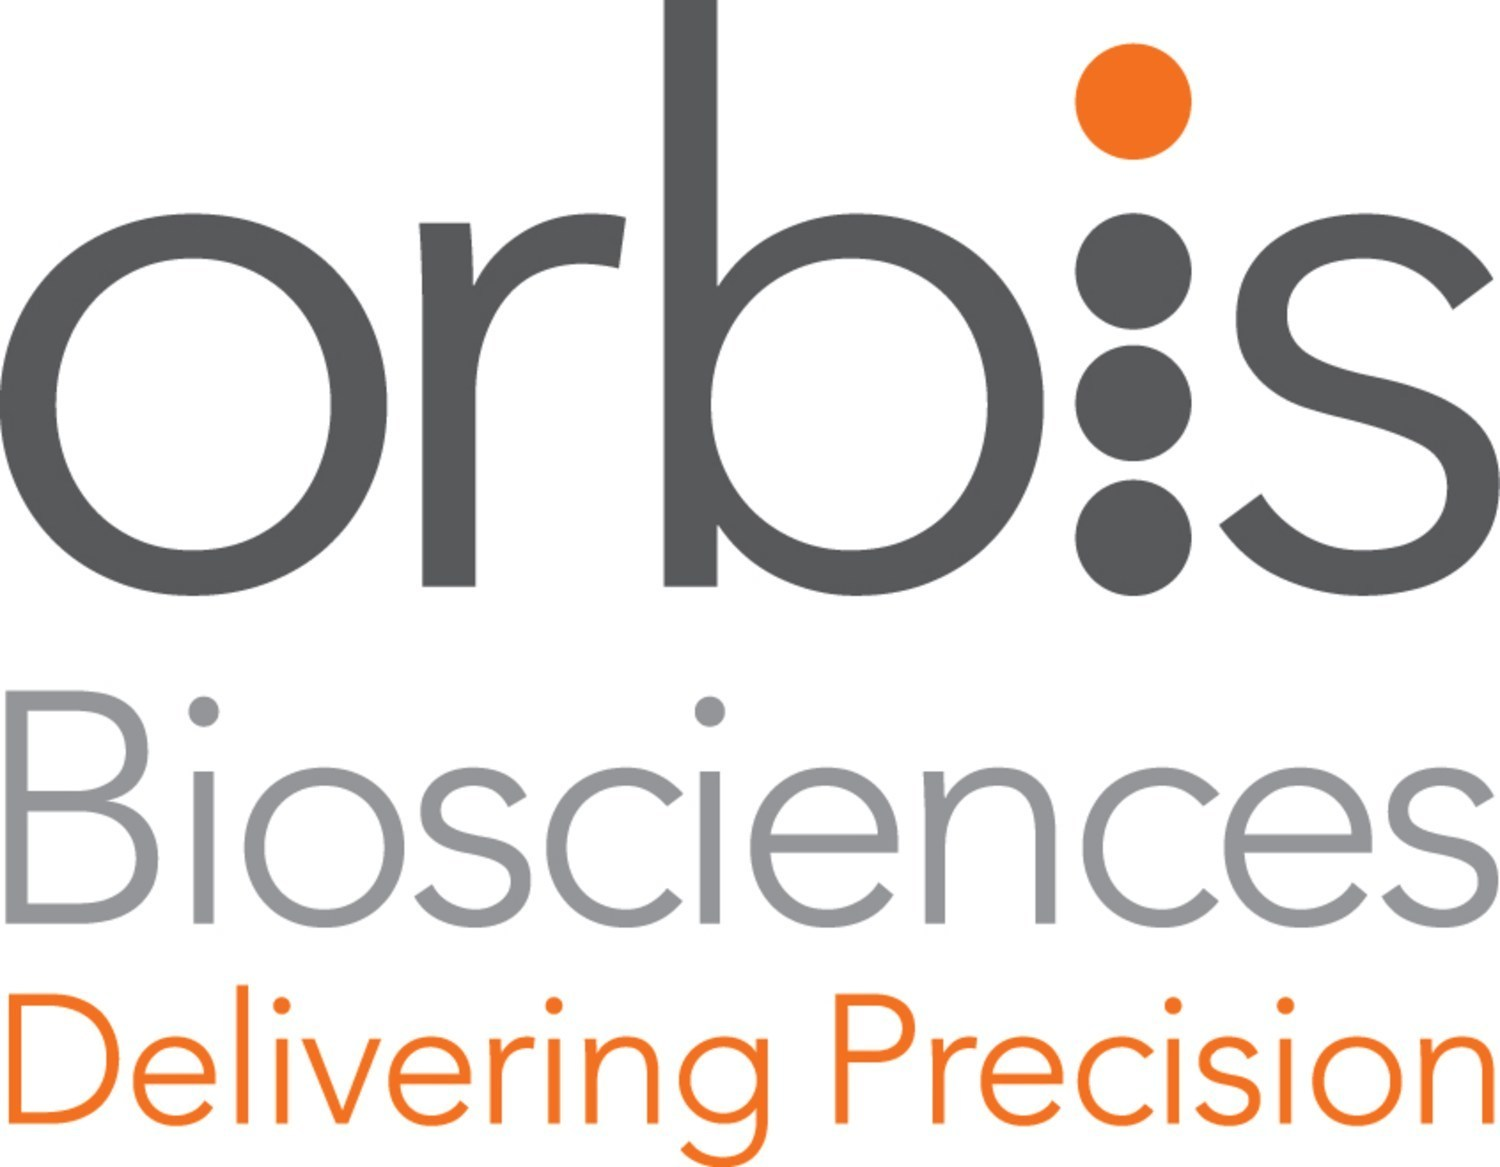 Orbis Biosciences optimizes oral and injectable pharmaceutical products for improved compliance. Orbis' proprietary technologies provide customized drug release, format and dose flexibility, and taste-masking for oral drugs.